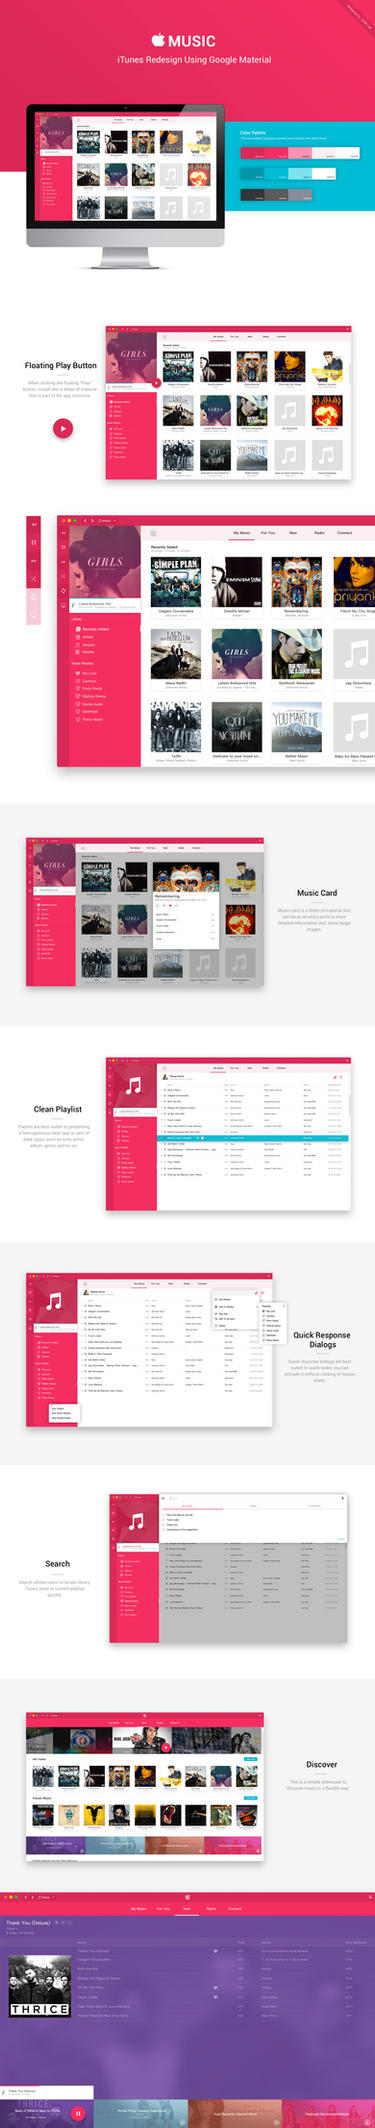 Apple iTunes Redesign Using Google Material by uiuxlab